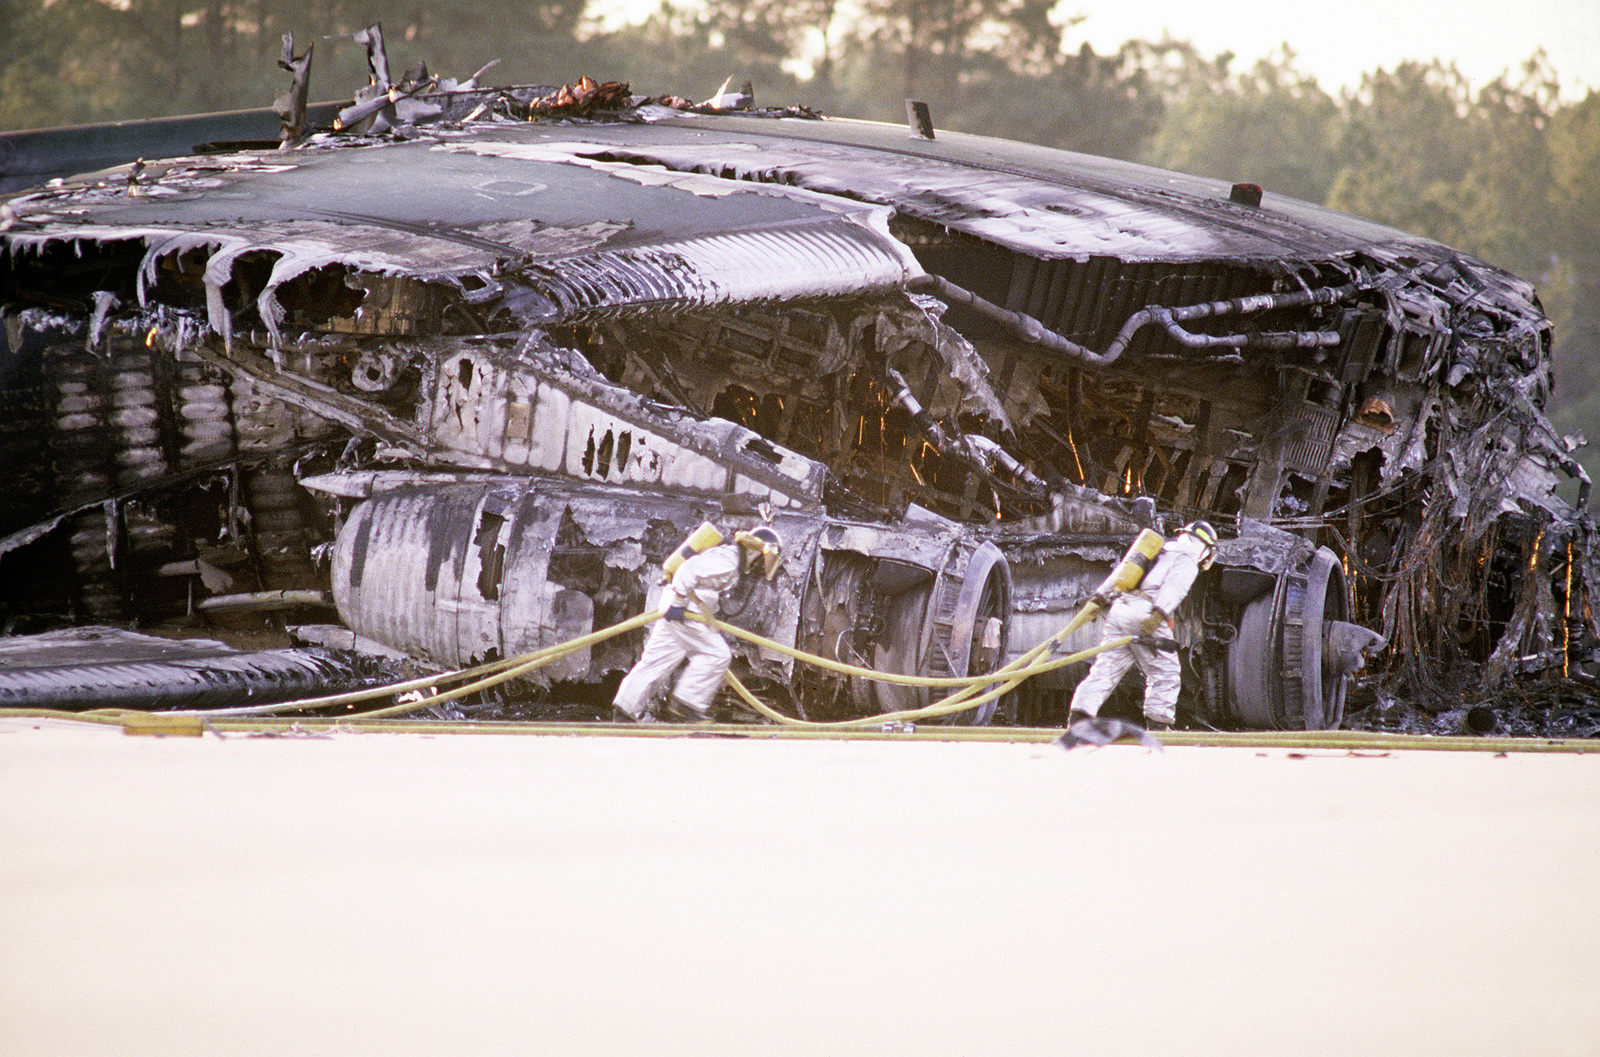 Pope Air Force Base firefighters drag fire hoses in front of a C-141 that was destroyed when an F-16 crashed into it, after a mid-air collision with a C-130 over the base. Exact Date Shot Unknown . Published in AIRMAN Magazine, May 1994